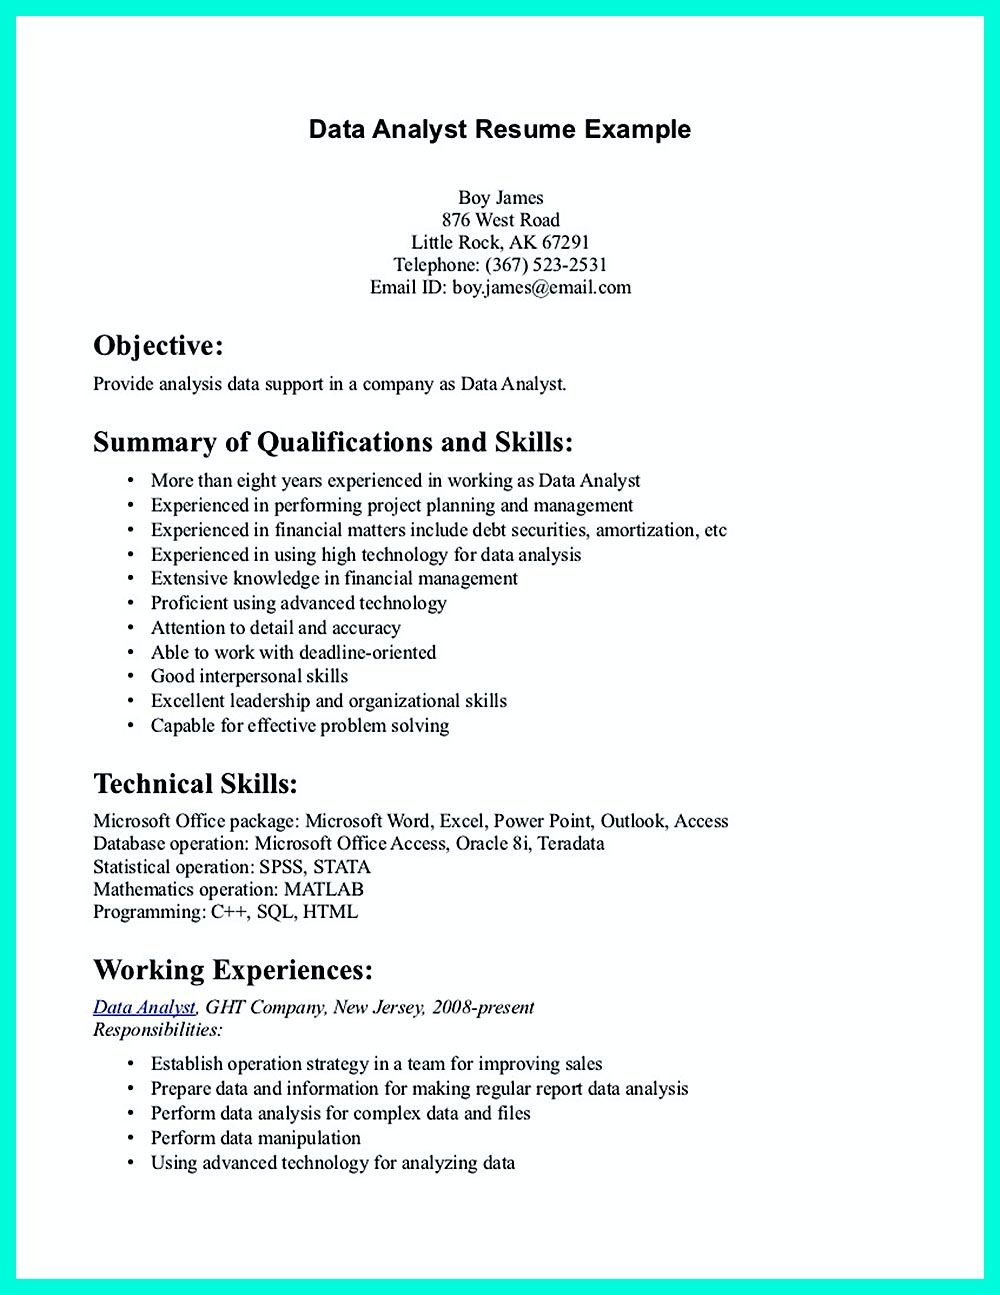 business analyst resume samples with objective data analyst resume will describe your professional profile you are business analyst and just seeking for job